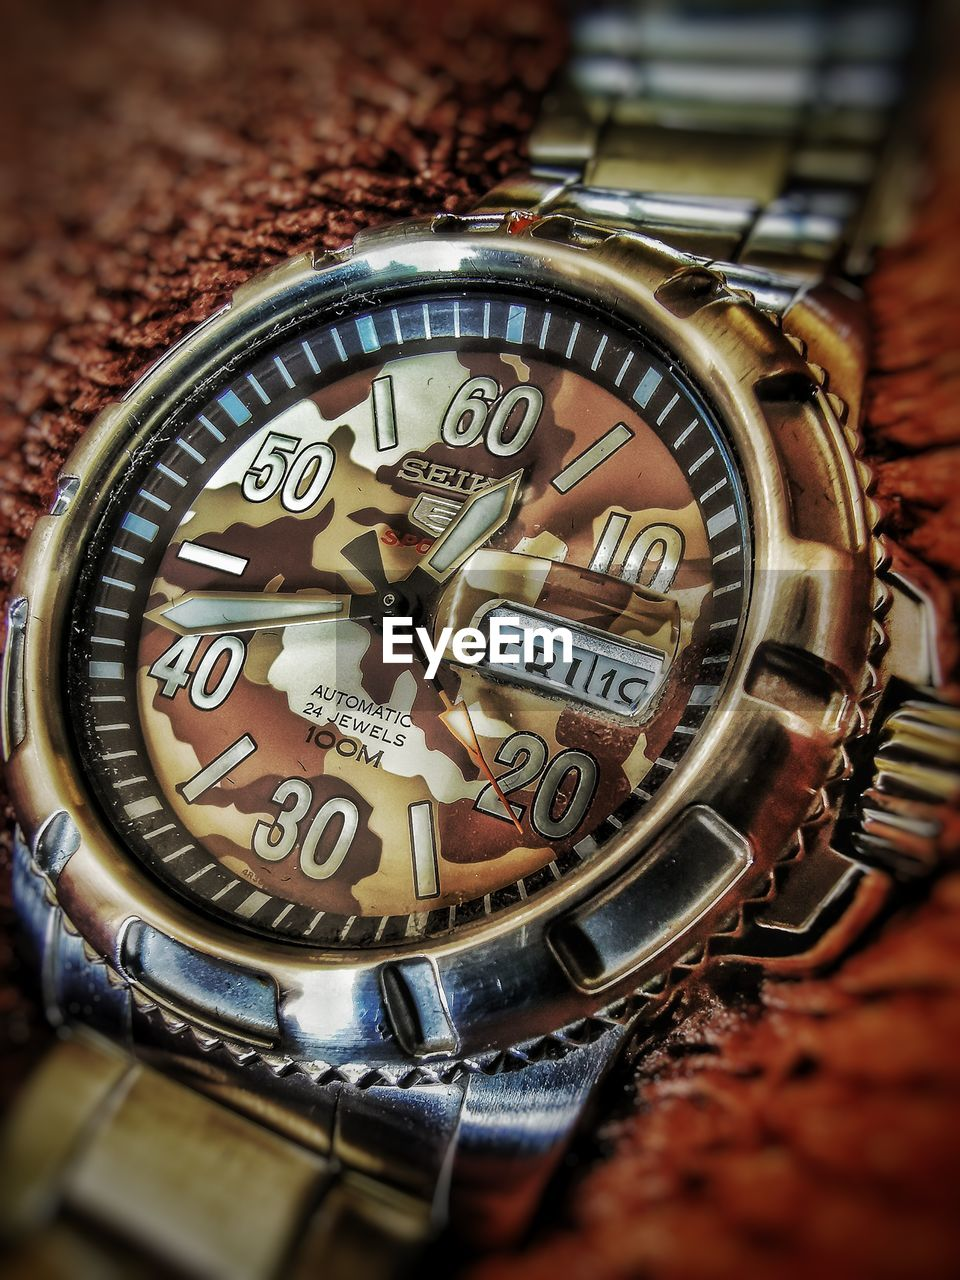 watch, number, close-up, wristwatch, selective focus, time, metal, no people, indoors, accuracy, still life, high angle view, communication, instrument of time, text, pocket watch, clock, day, shiny, silver colored, personal accessory, minute hand